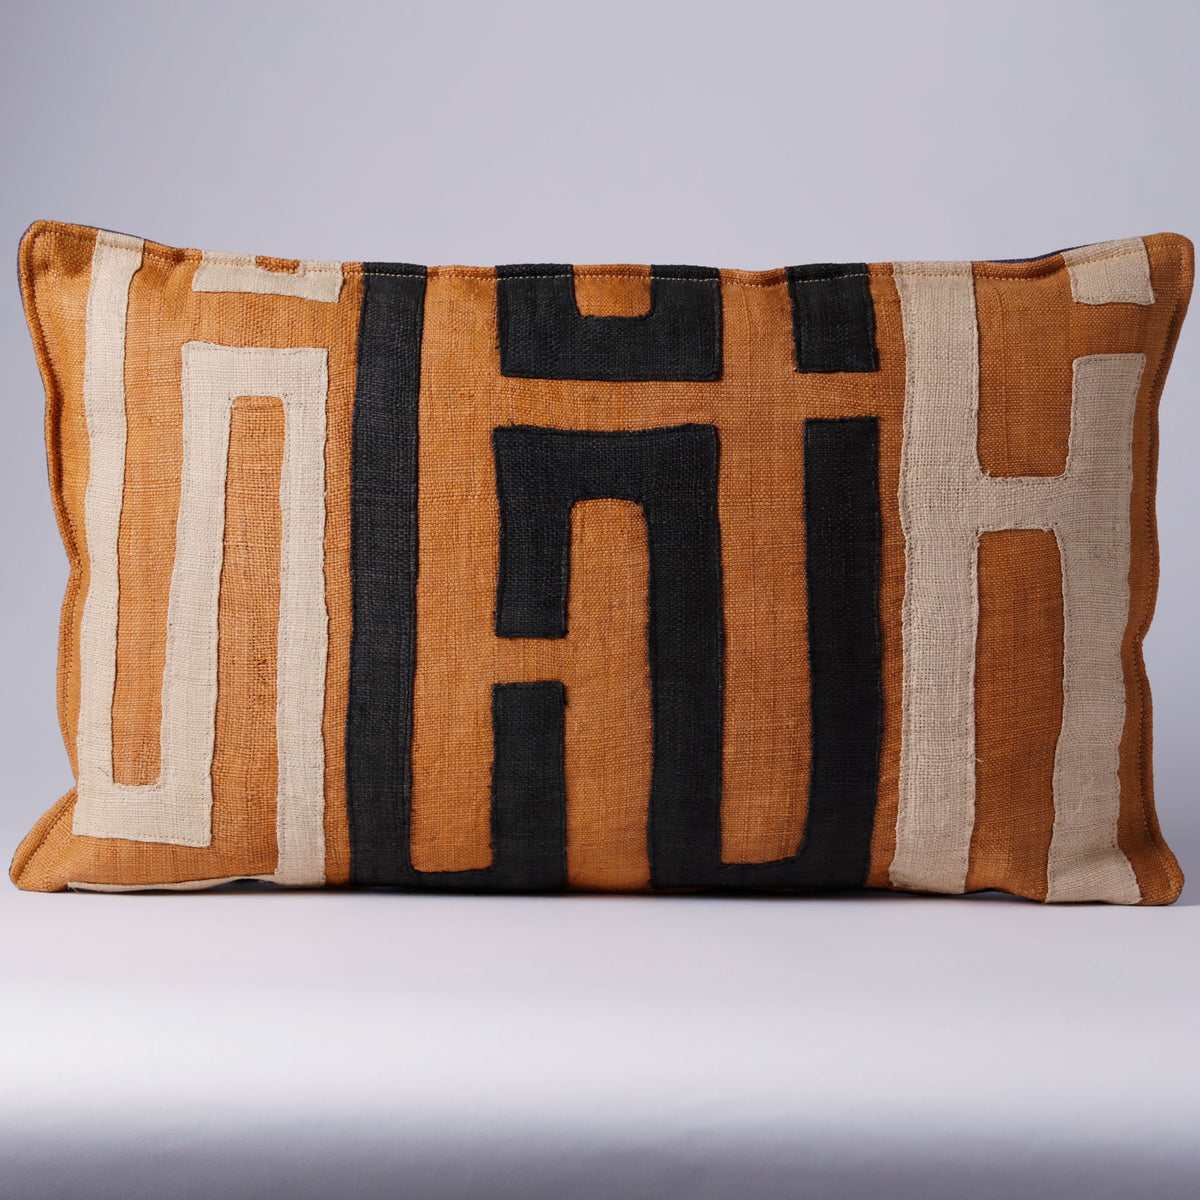 SAMBOUE PILLOW, ORANGE, LARGE